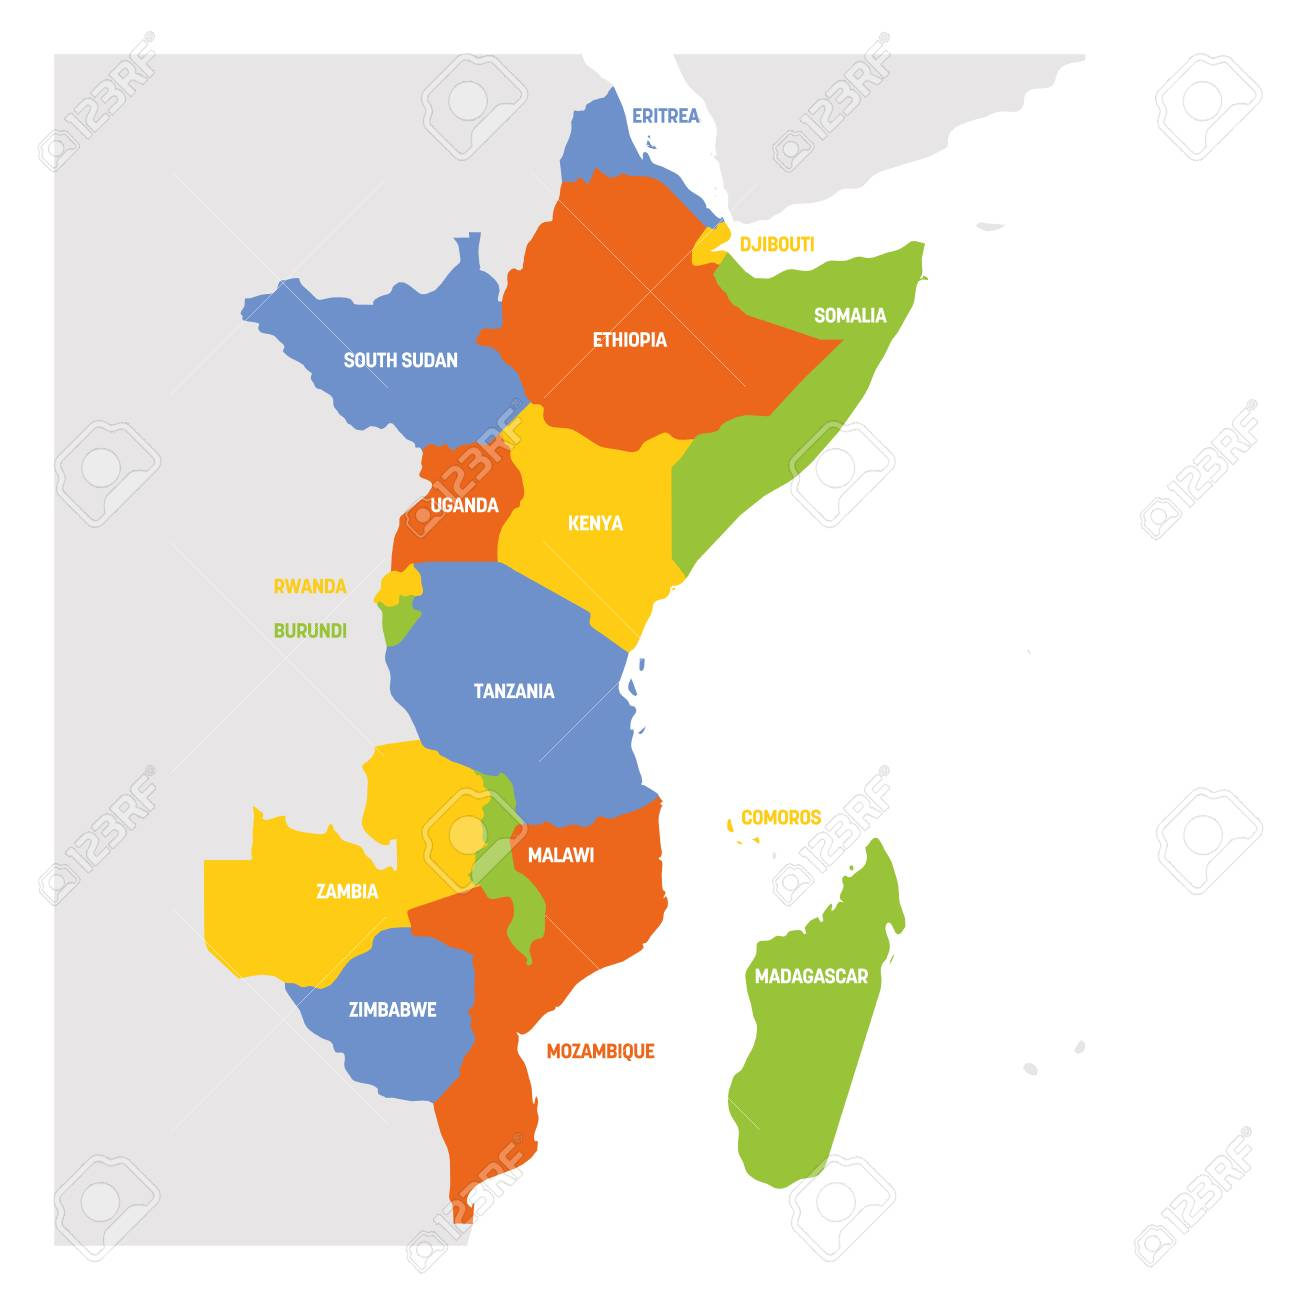 Map Of Eastern Africa Countries.East Africa Region Map Of Countries In Eastern Africa Vector